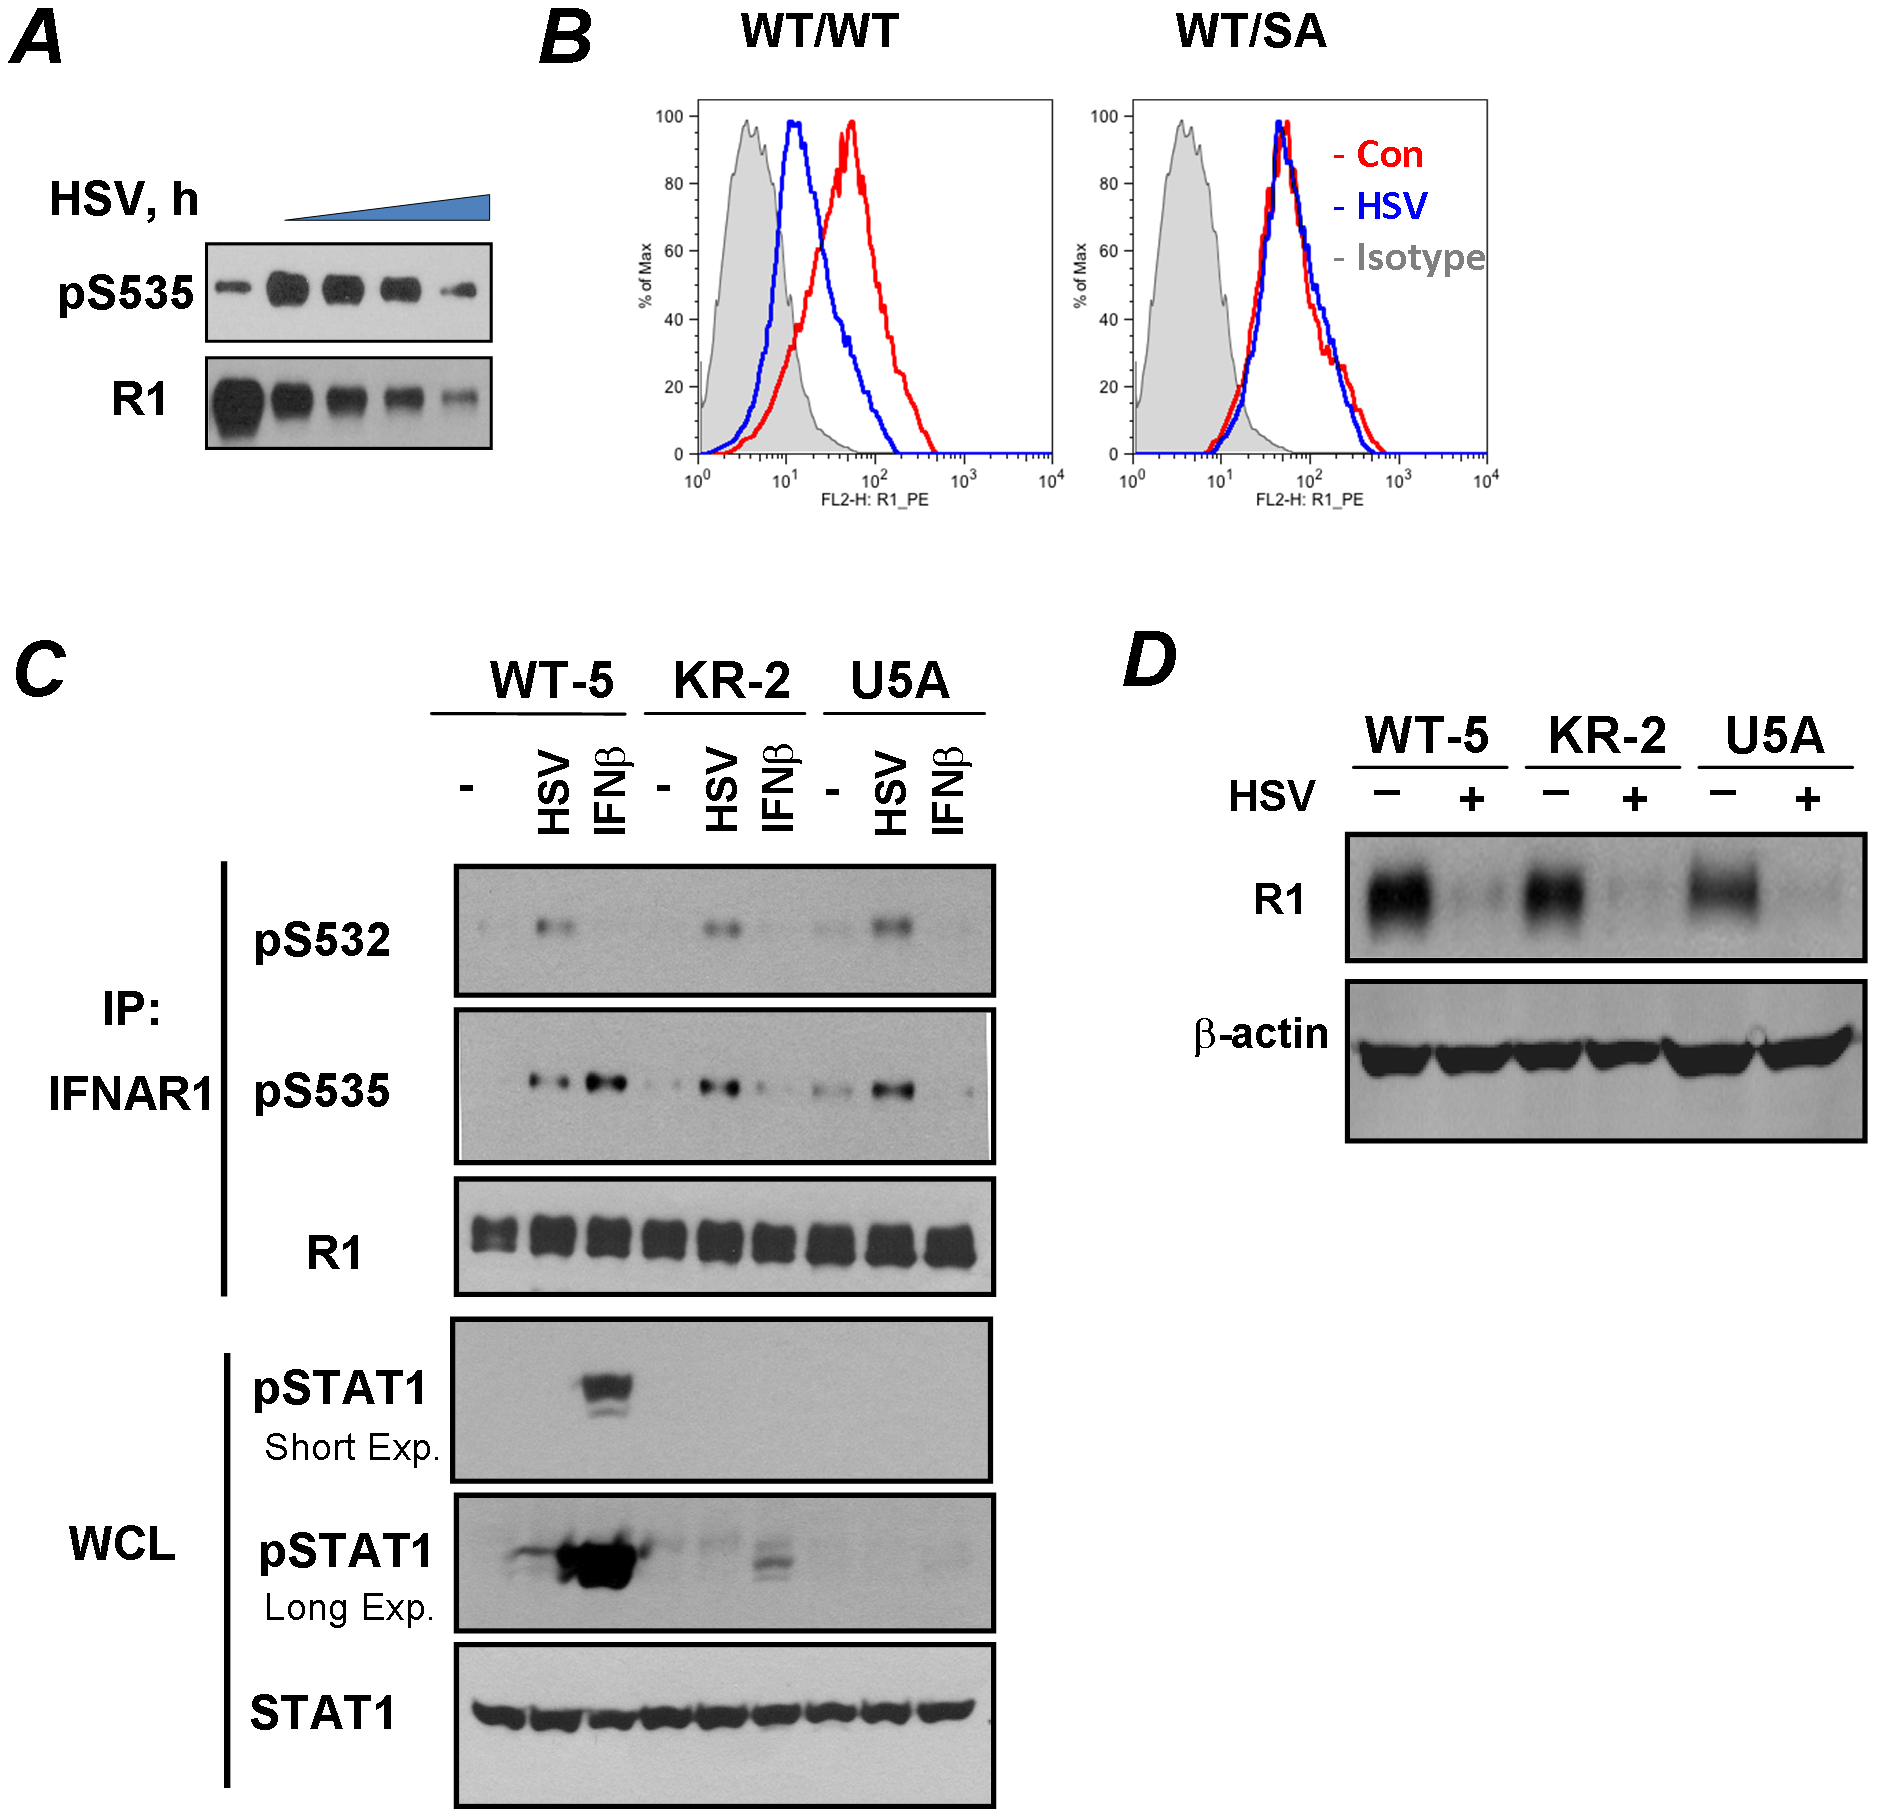 HSV induces ligand/TYK2-independent phosphorylation and downregulation of IFNAR1.